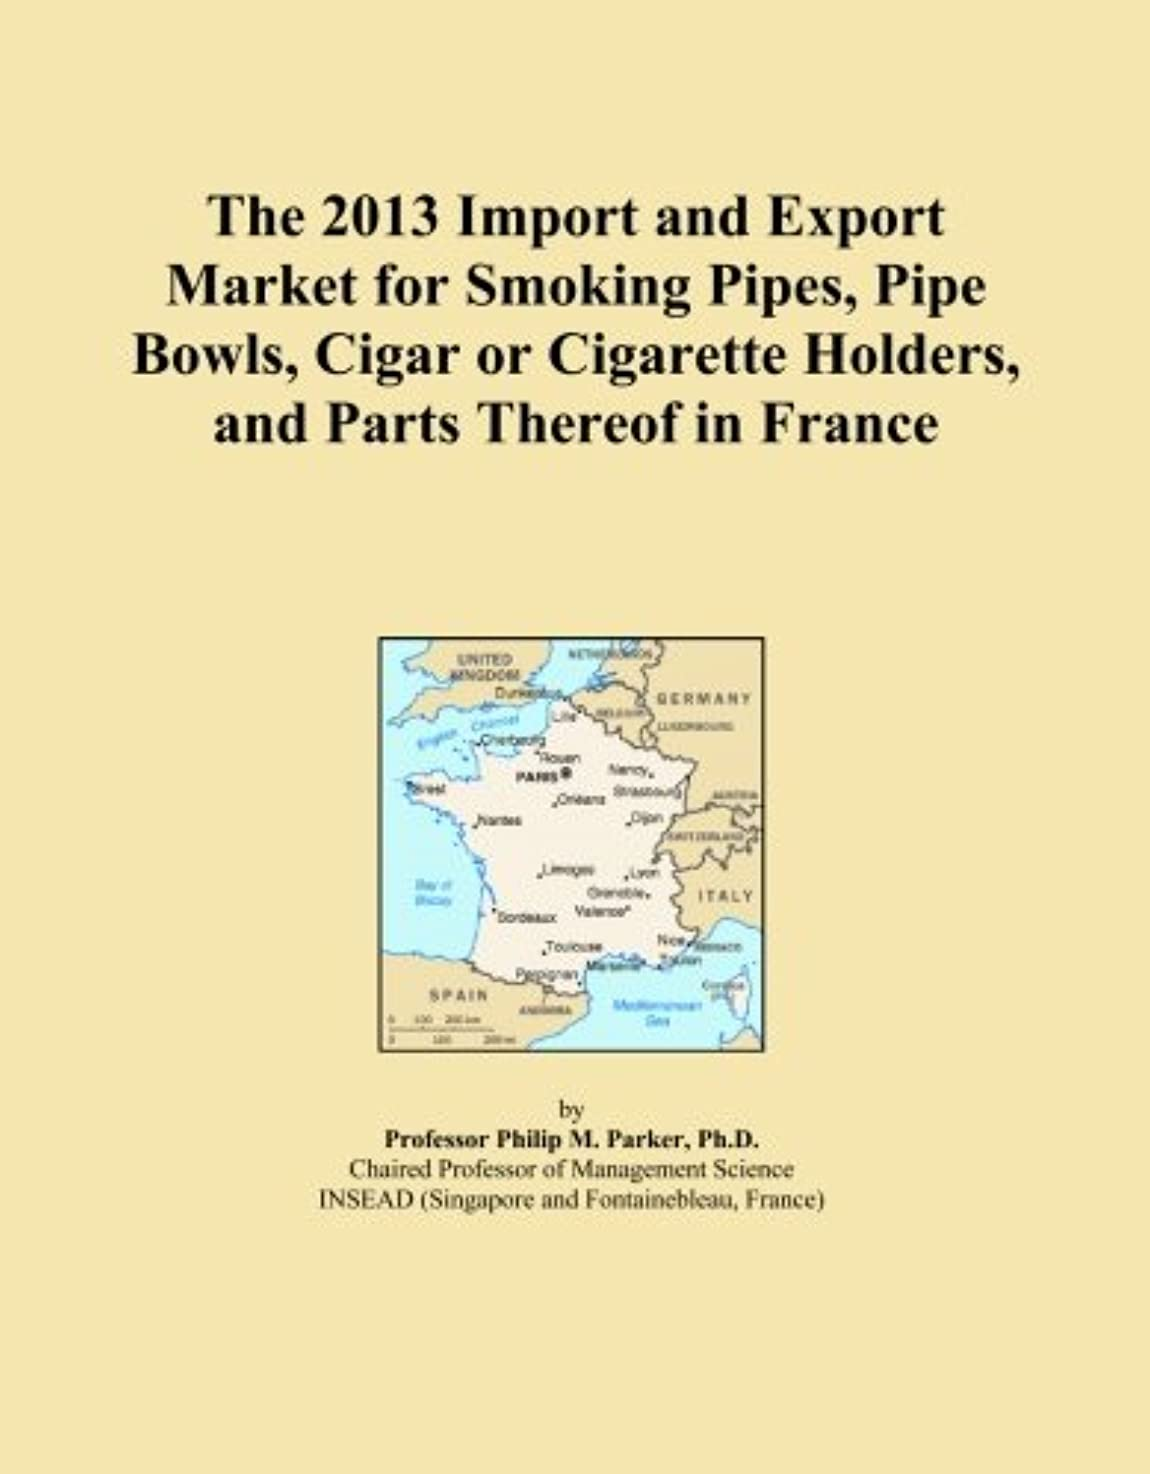 残りマウンド絶滅したThe 2013 Import and Export Market for Smoking Pipes, Pipe Bowls, Cigar or Cigarette Holders, and Parts Thereof in France